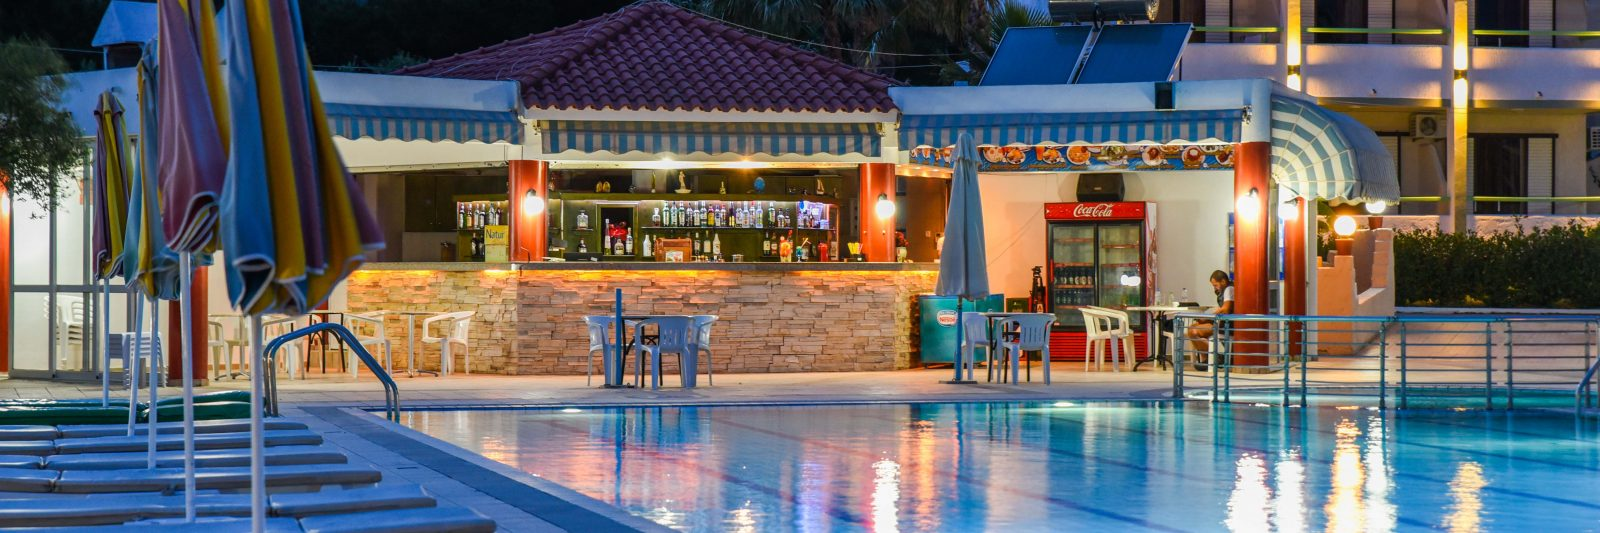 Photos Image| Pool & Bar